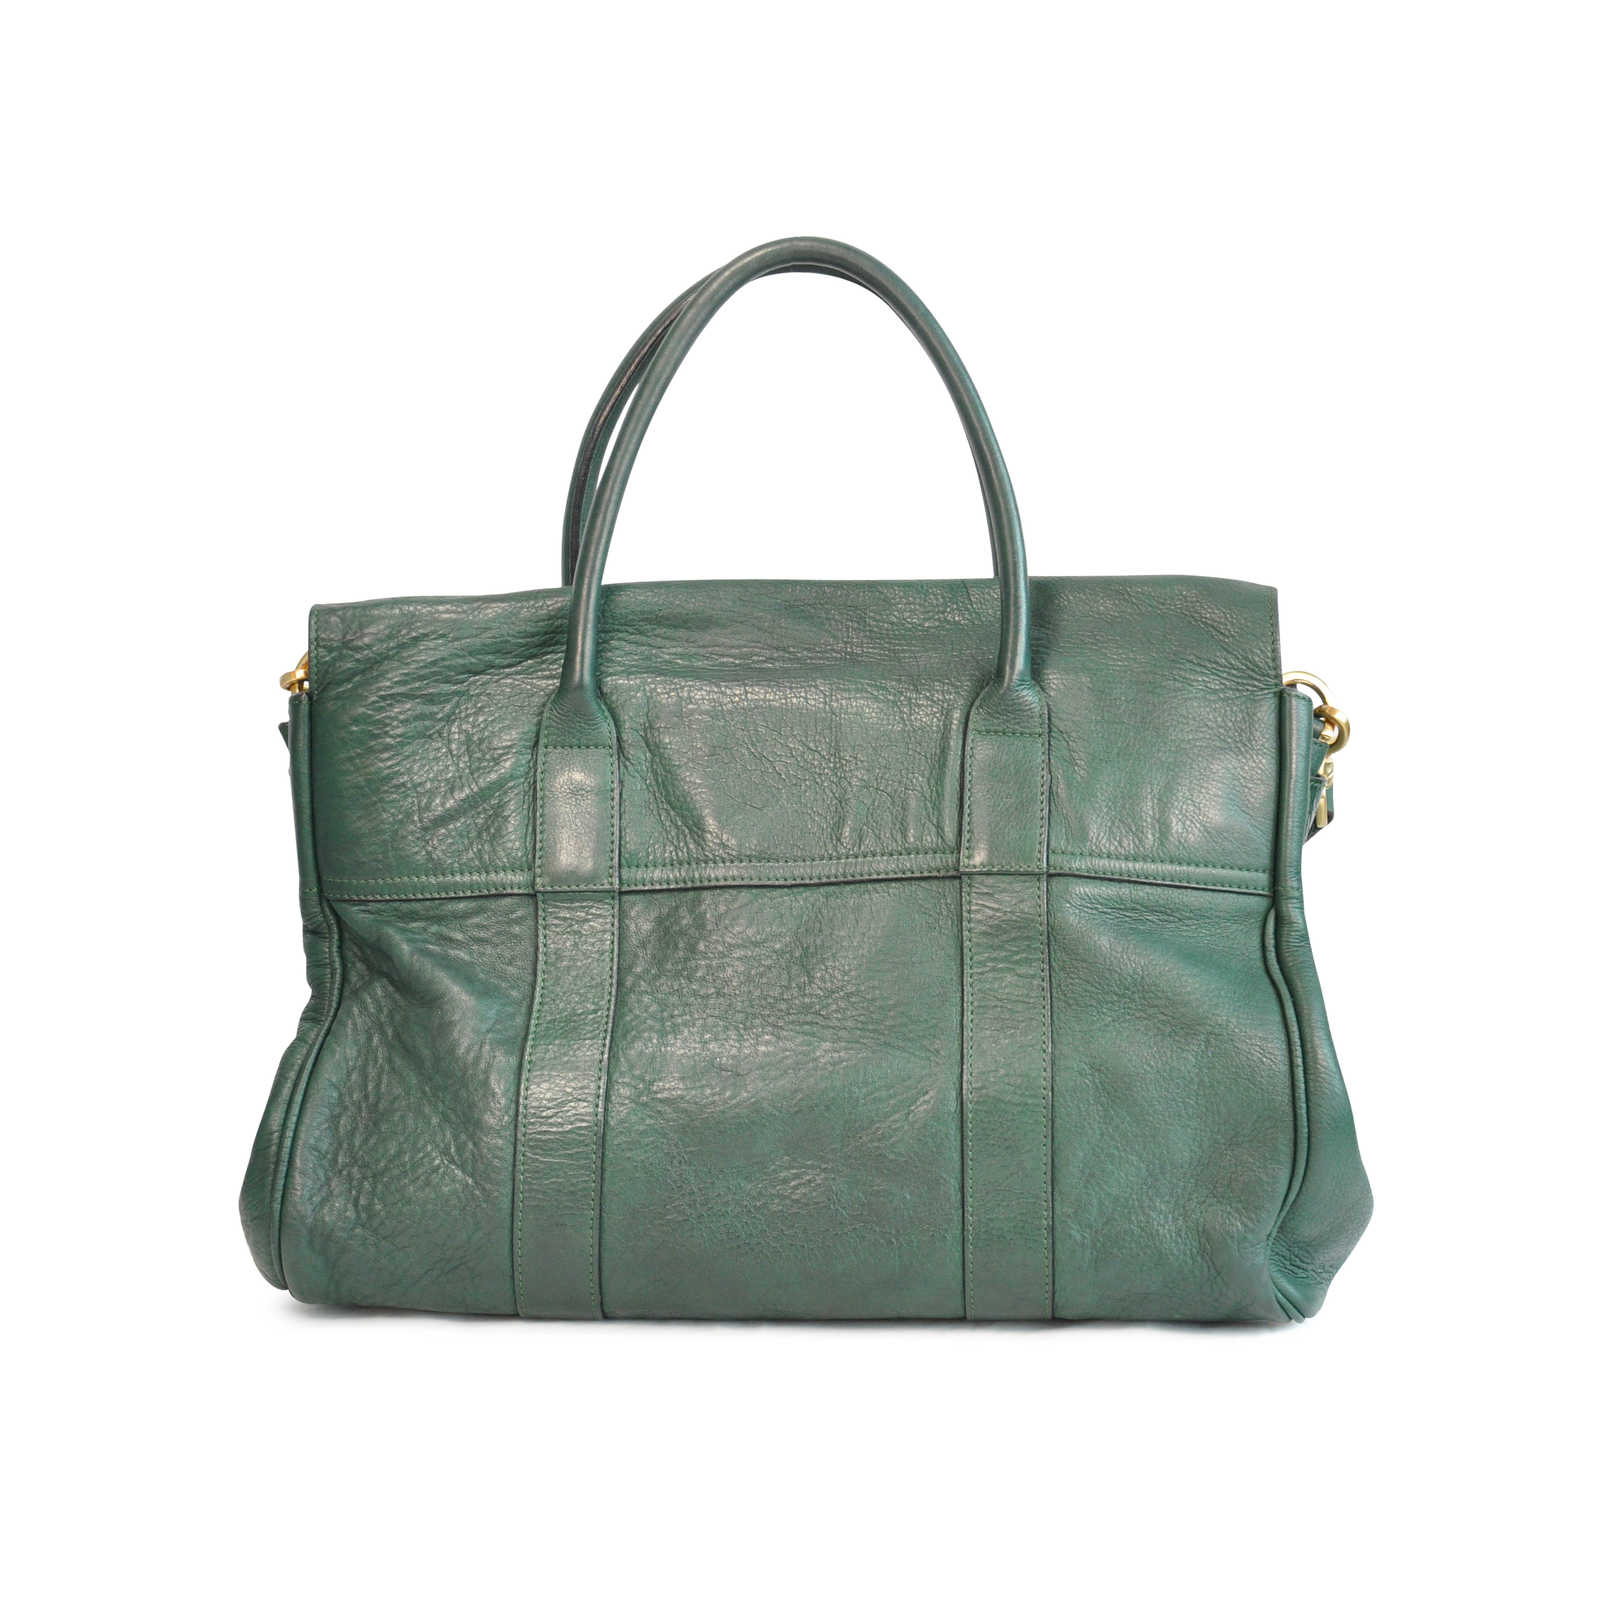 ... clearance mulberry heritage bayswater satchel thumbnail 0 mulberry  heritage bayswater satchel thumbnail 1 e9b53 5fe2f 534accc07bd81